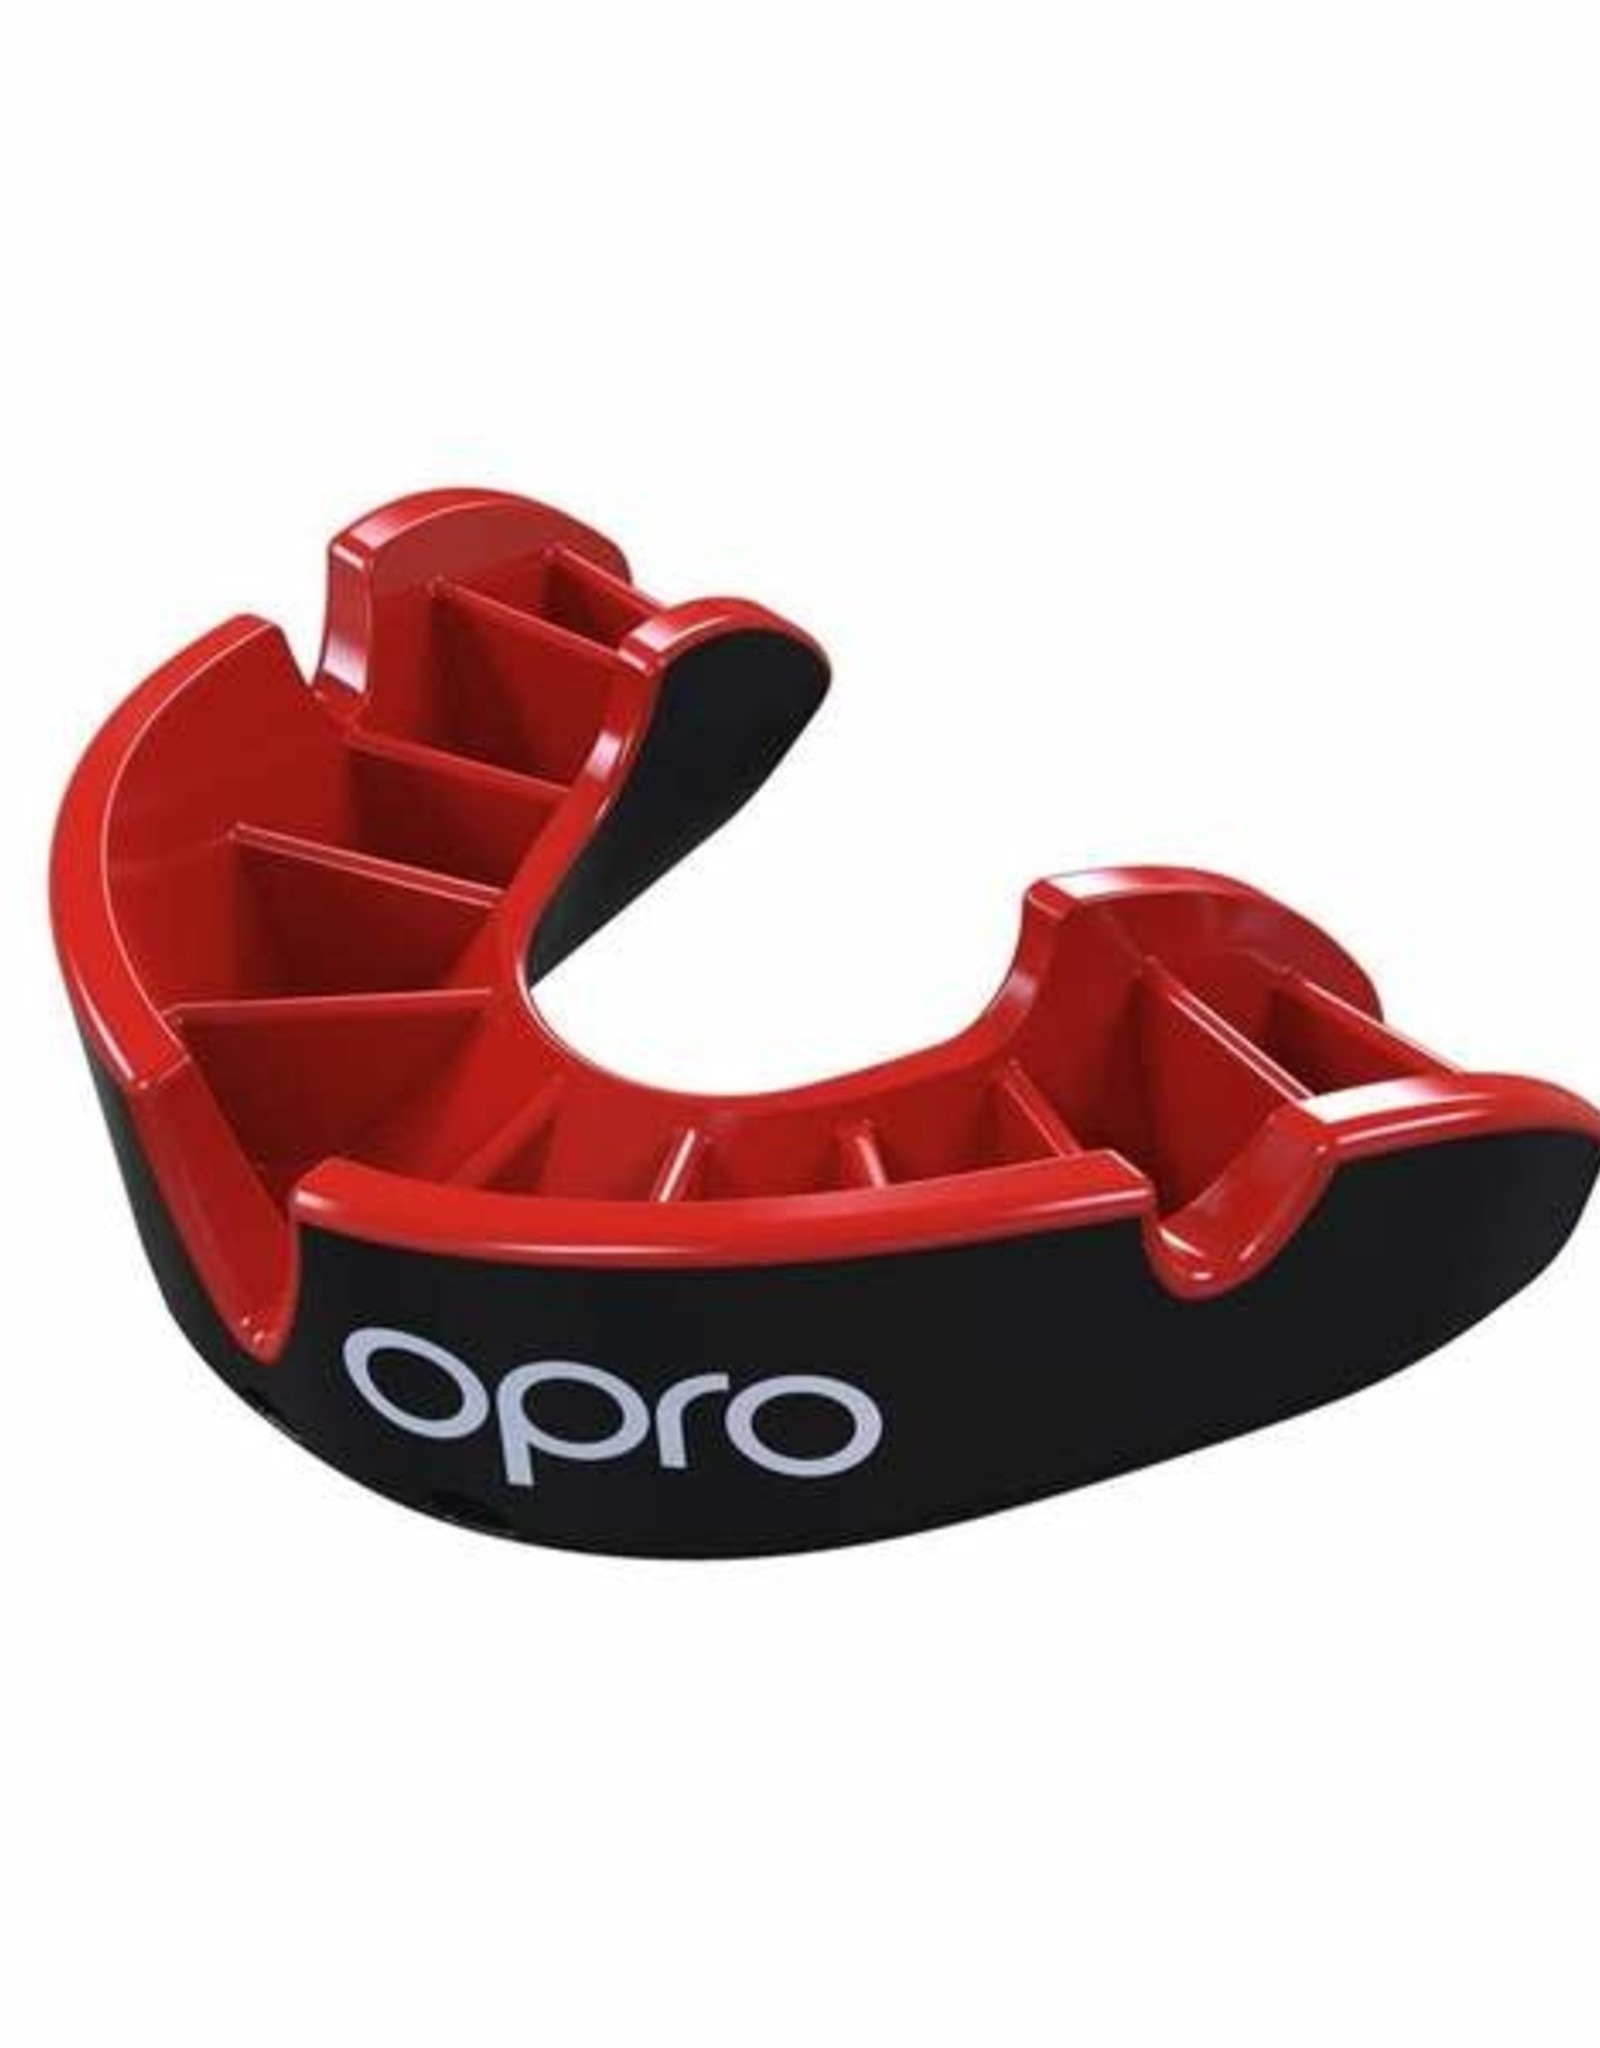 OPRO MOUTH SELF FIT SILV. SR. BLK/RED